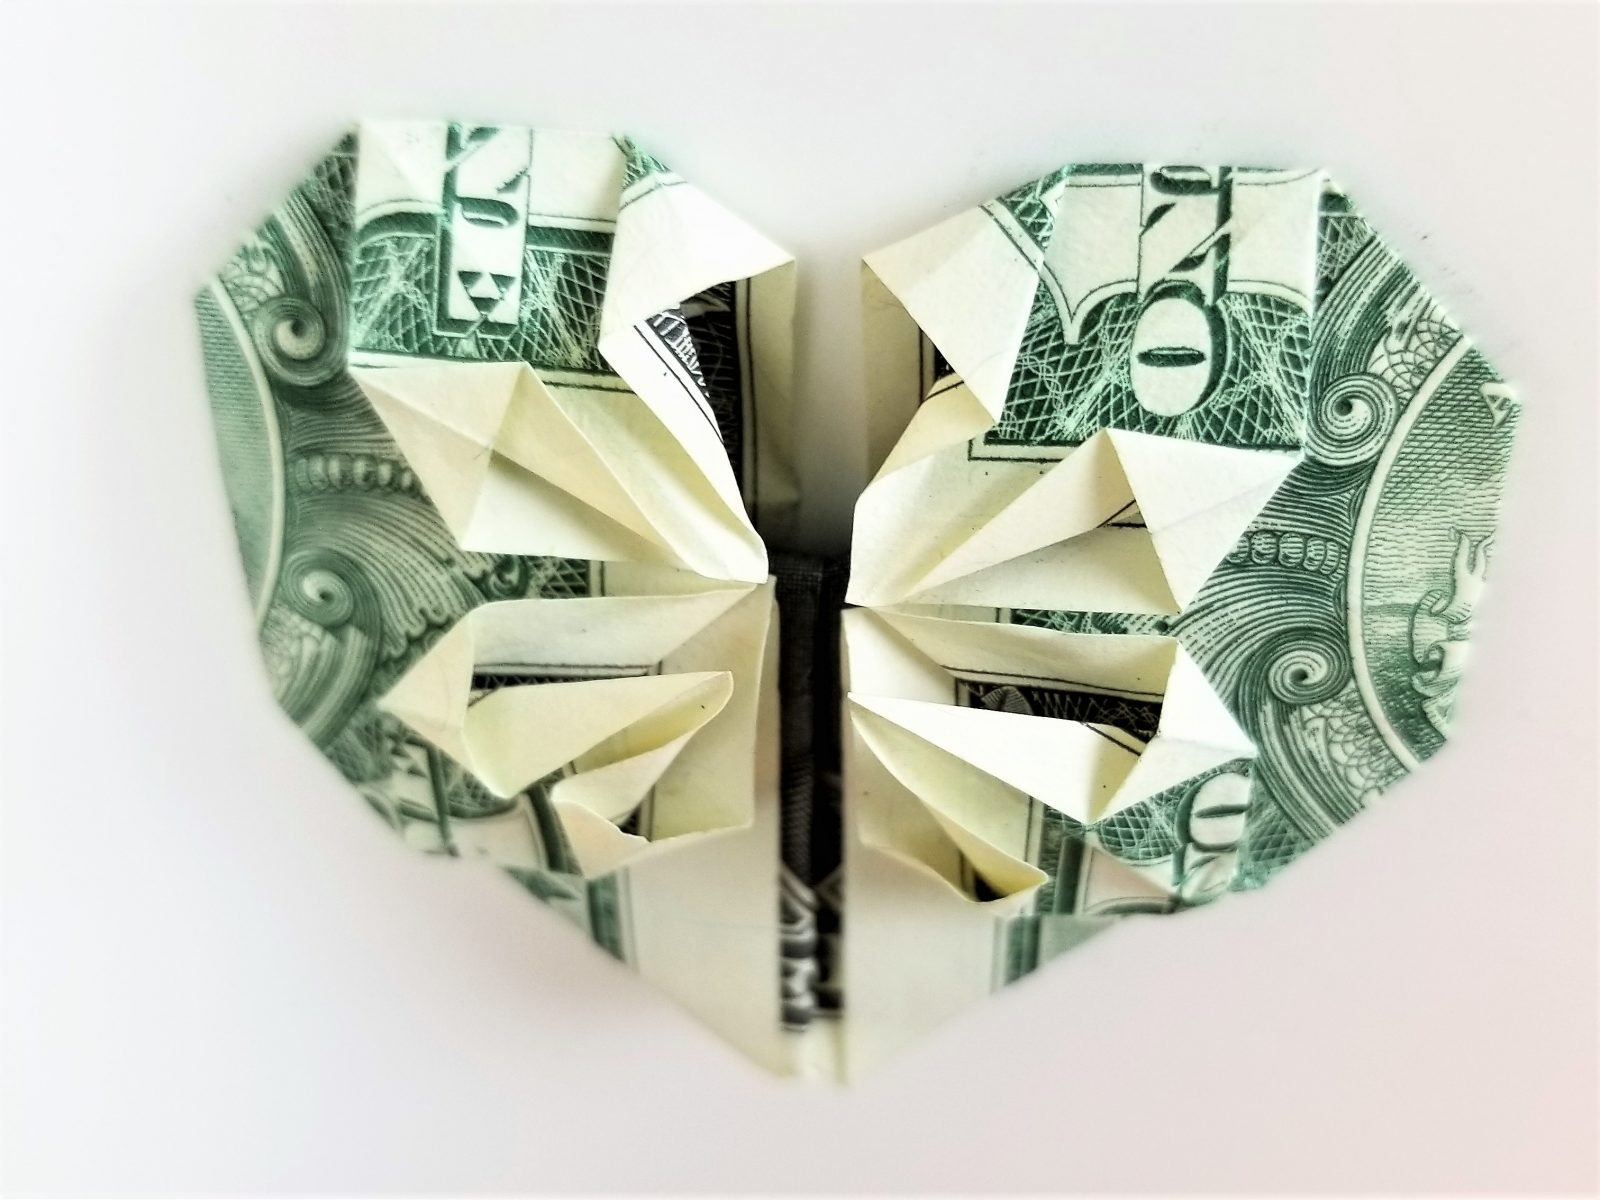 Dollar Bill Origami Heart Dollar Bill Origami Heart With Flower Fave Mom